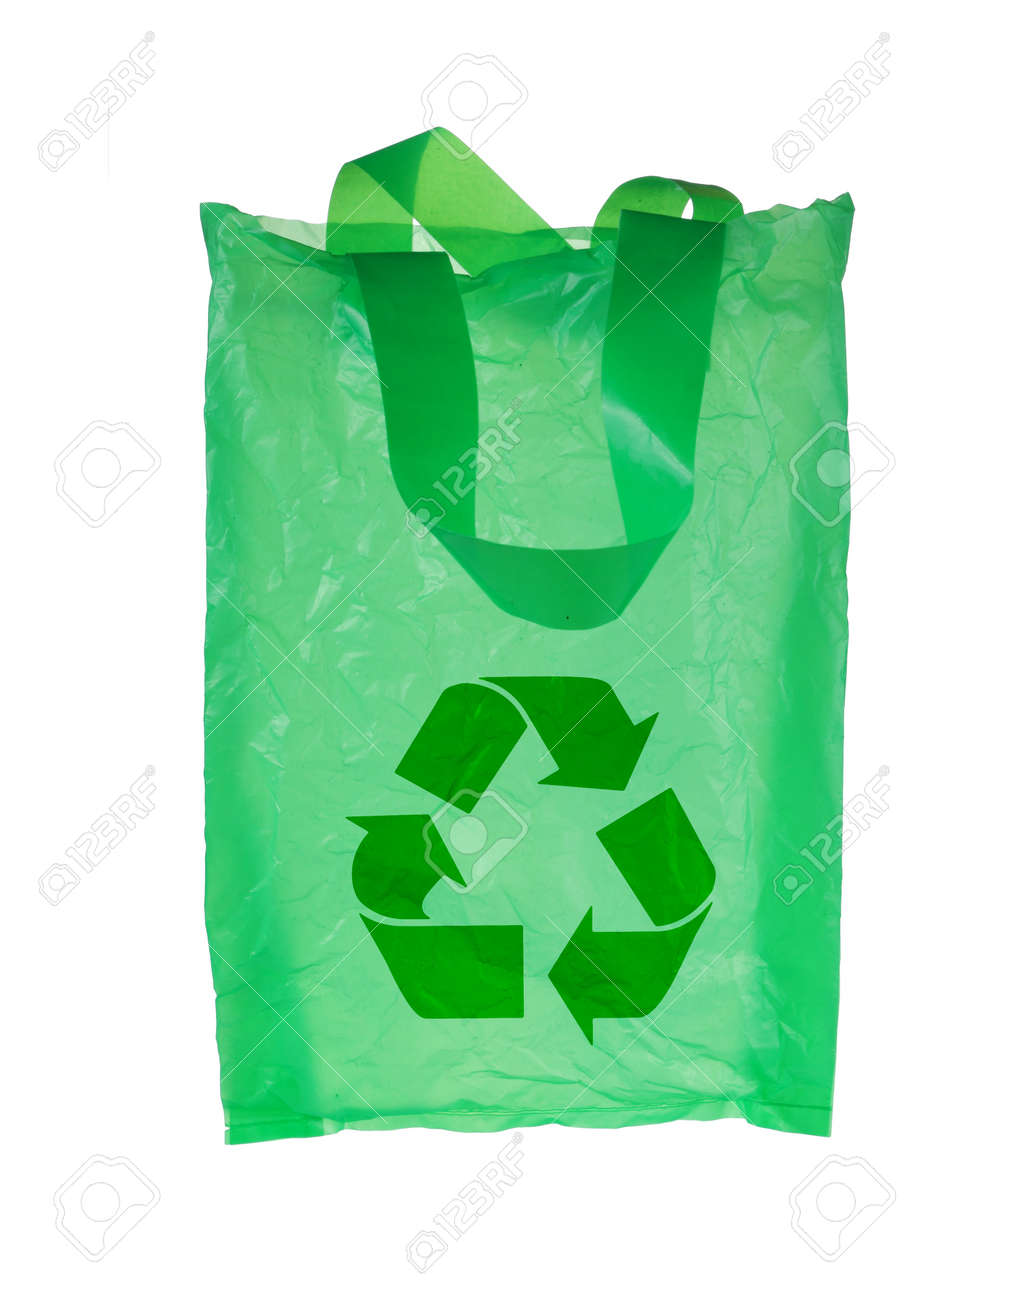 Green Plastic Bag With Recycle Symbol. Isolated Over White ...